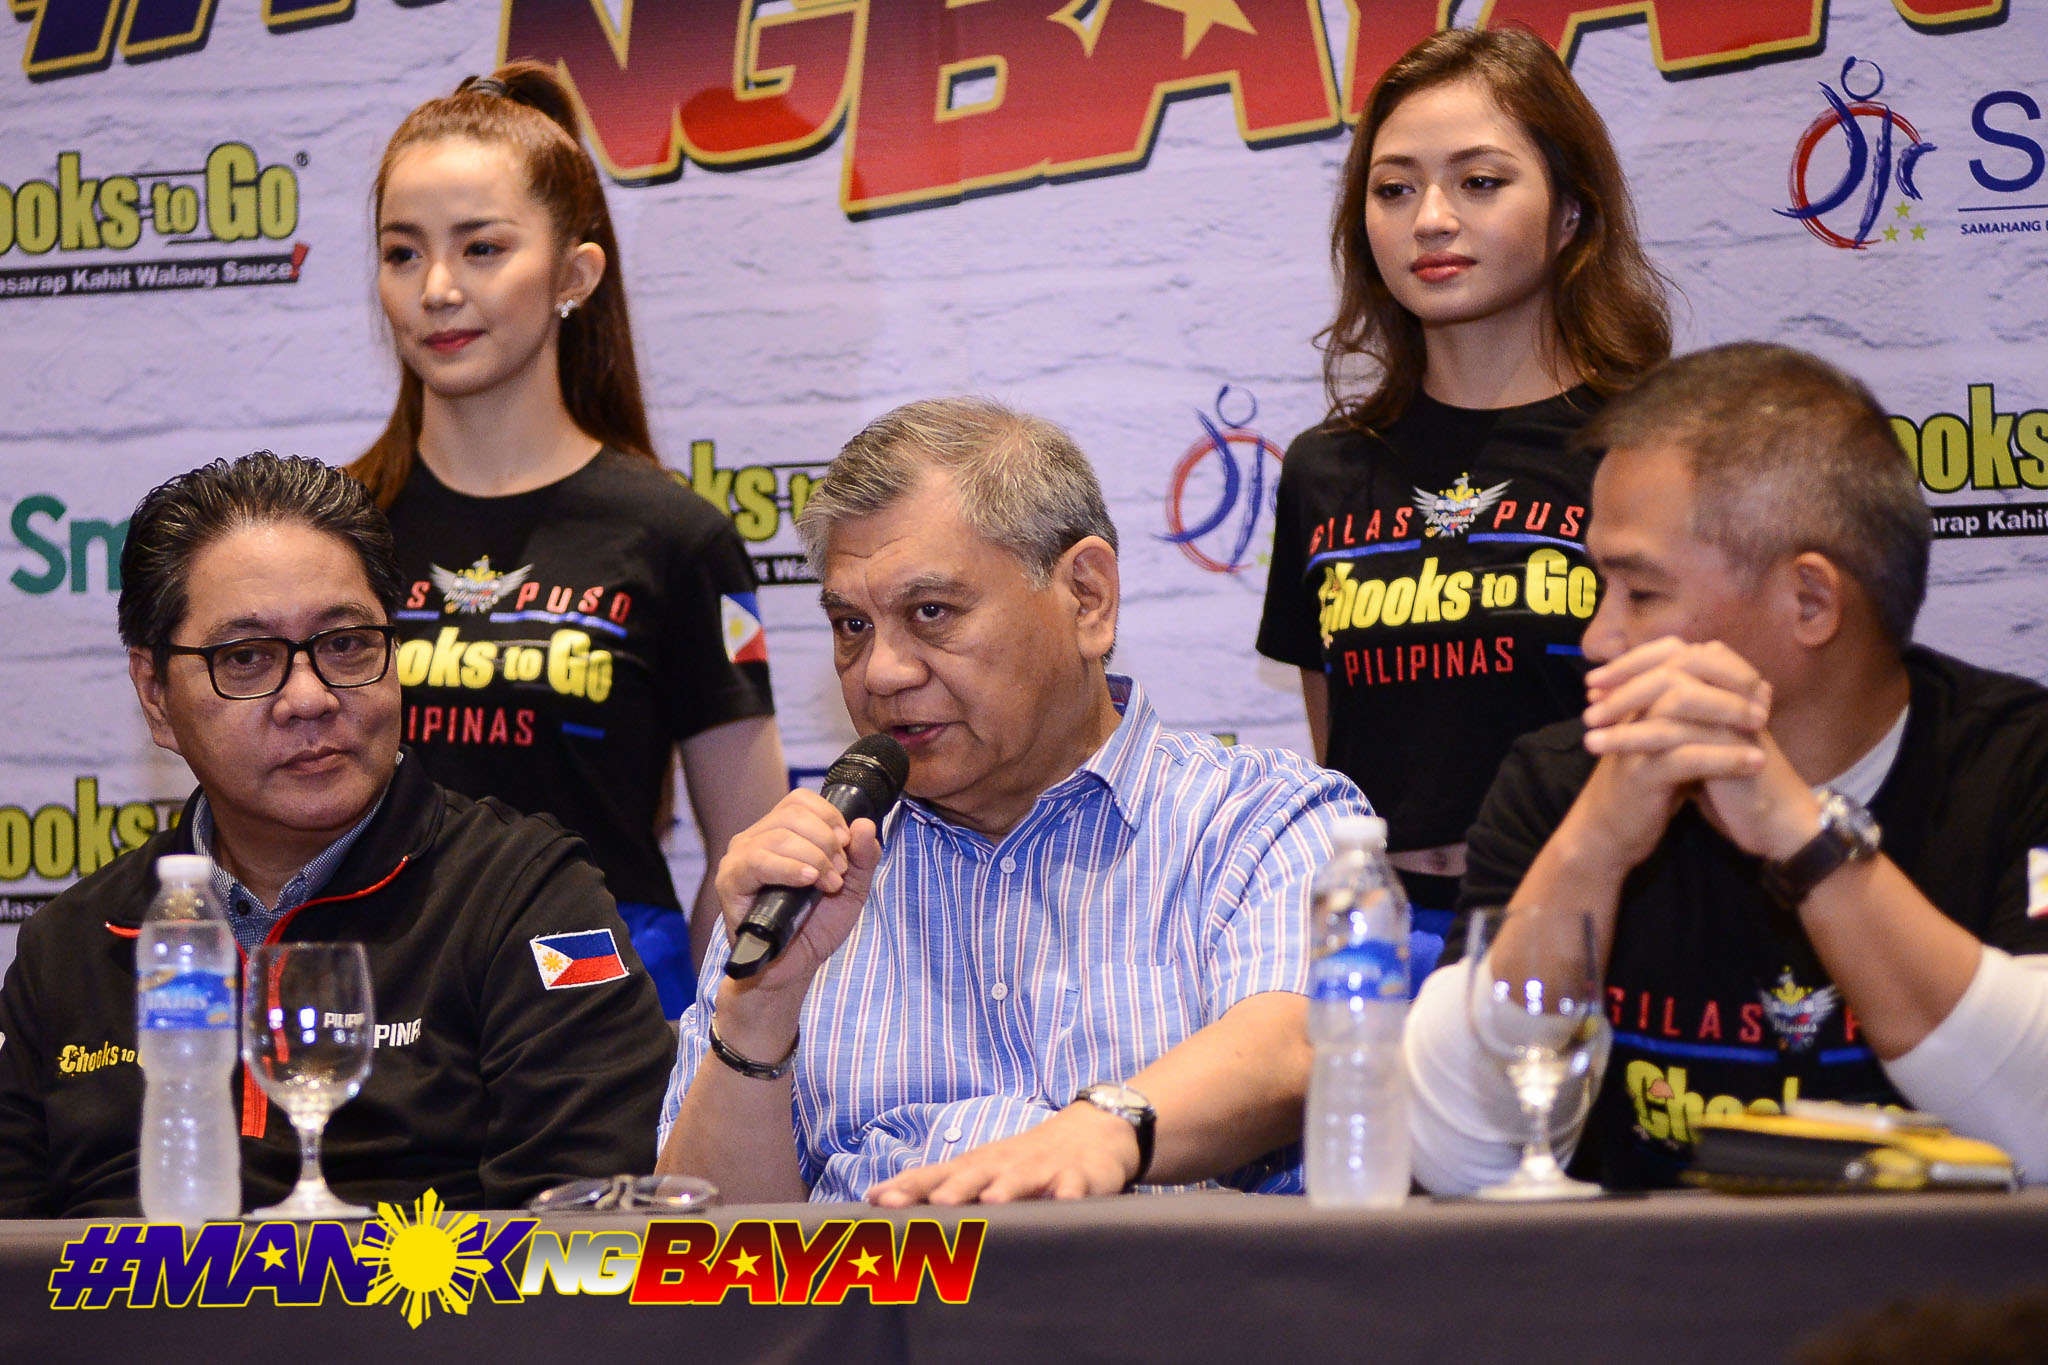 Tiebreaker Times Sonny Barrios urges all leagues to submit return proposal to IATF Chooks-to-Go Pilipinas 3x3 News PBA PFL  Sonny Barrios Samahang Basketbol ng Pilipinas PBA Season 45 Interagency Task Force 2020 PFL Season 2020 Chooks-to-Go Pilipinas 3x3 Season